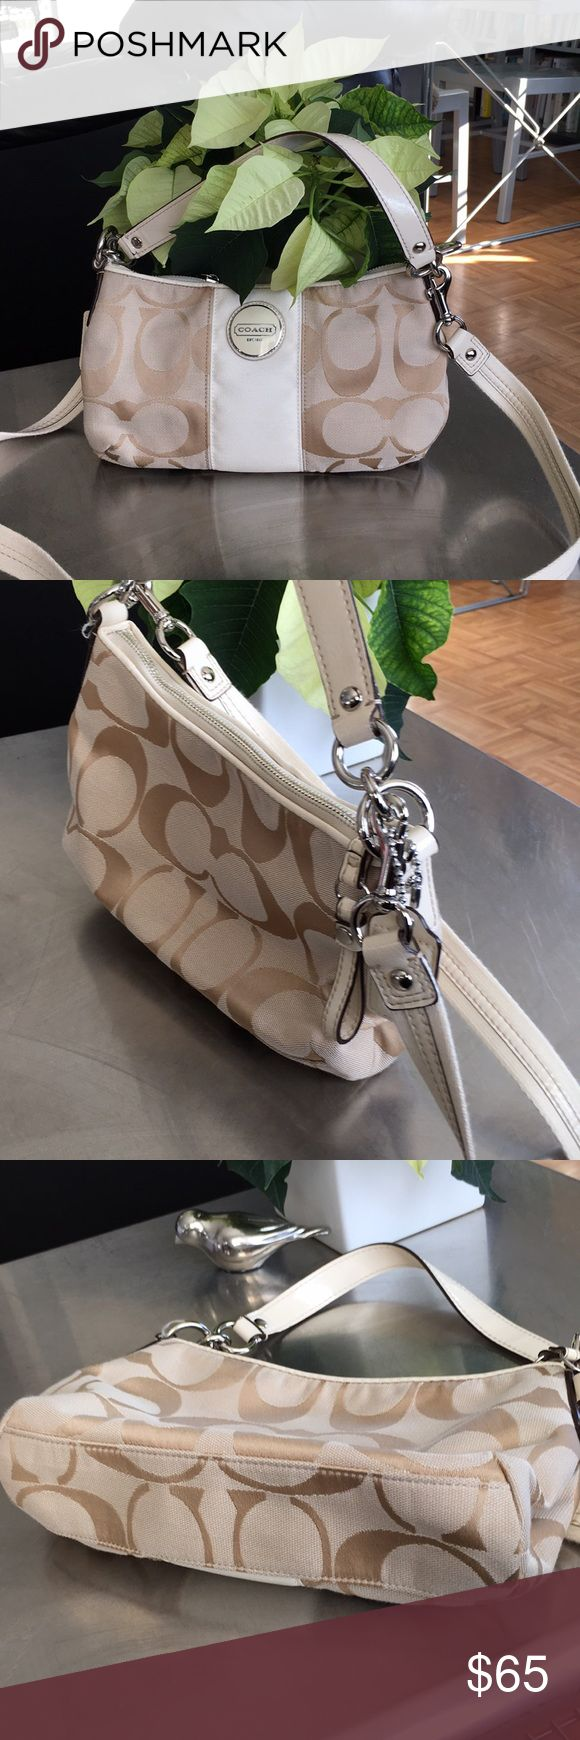 Coach/Signature/Demi Stripe/Shoulder Bag/ F17439/ EUC/ removable Shoulder strap/ silver tone hardware/interior zippered pocket and open pouch pocket/…r Coach Bags Shoulder Bags